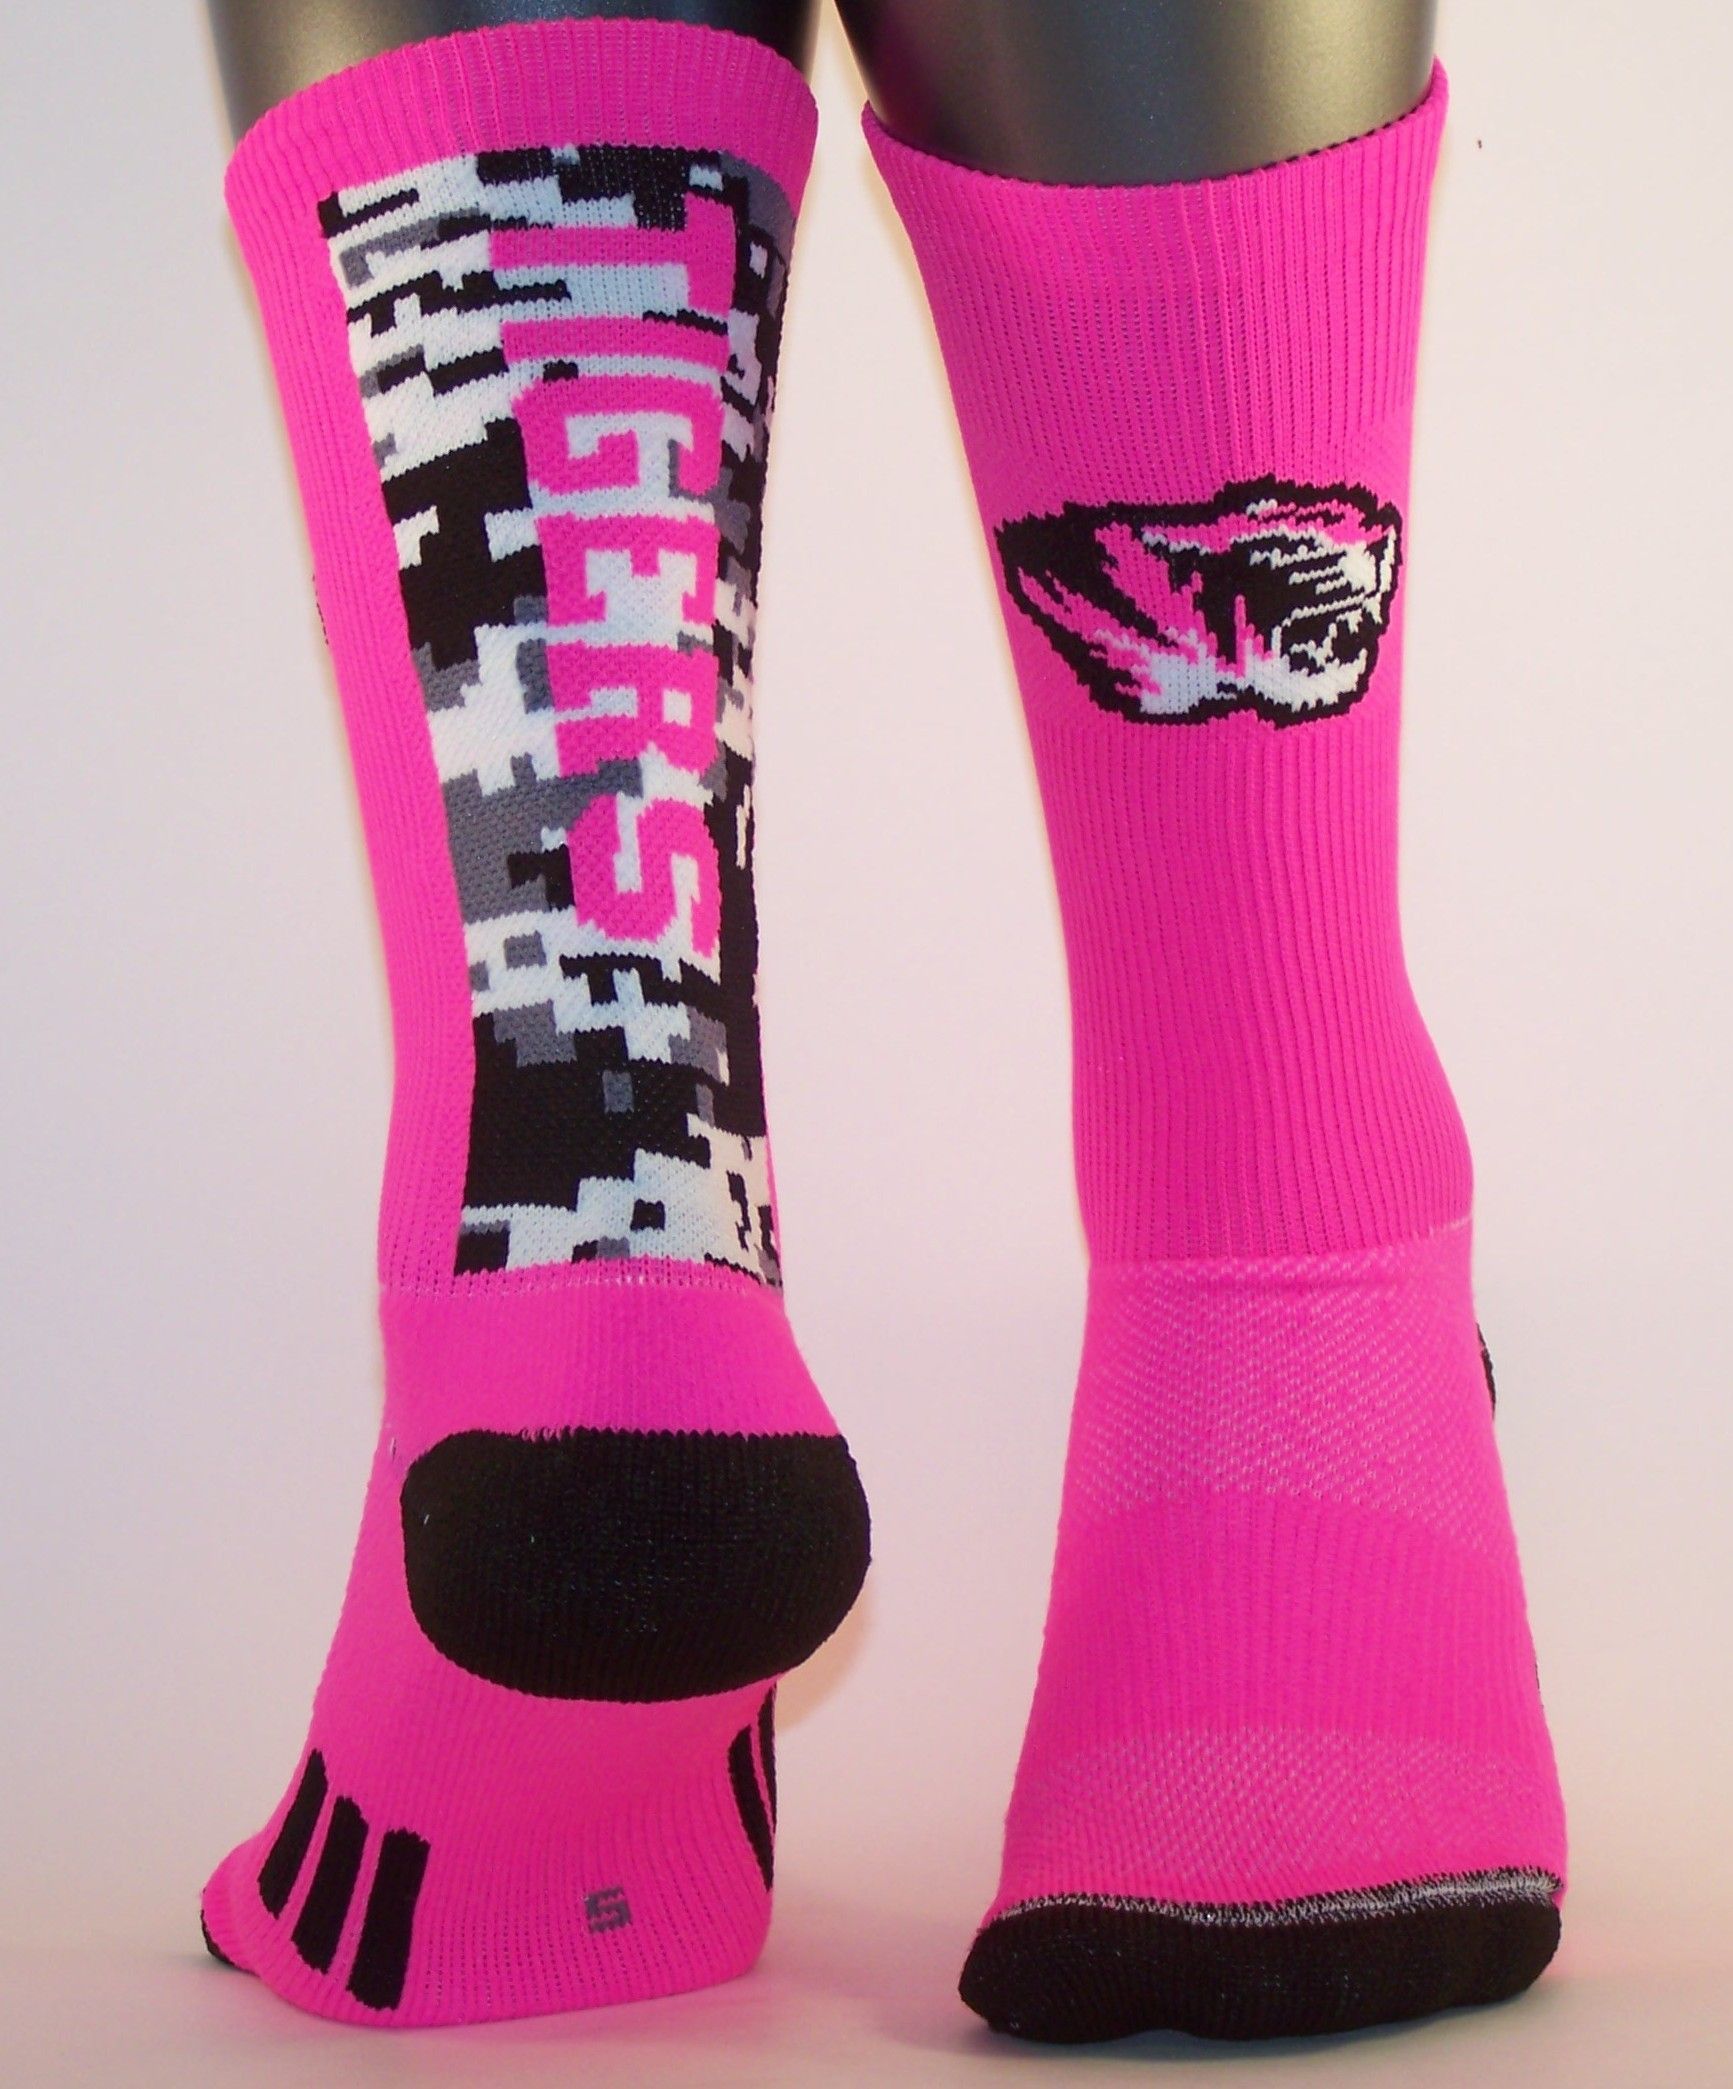 Pink Out Socks For October Get Your Custom Pink Socks For Your